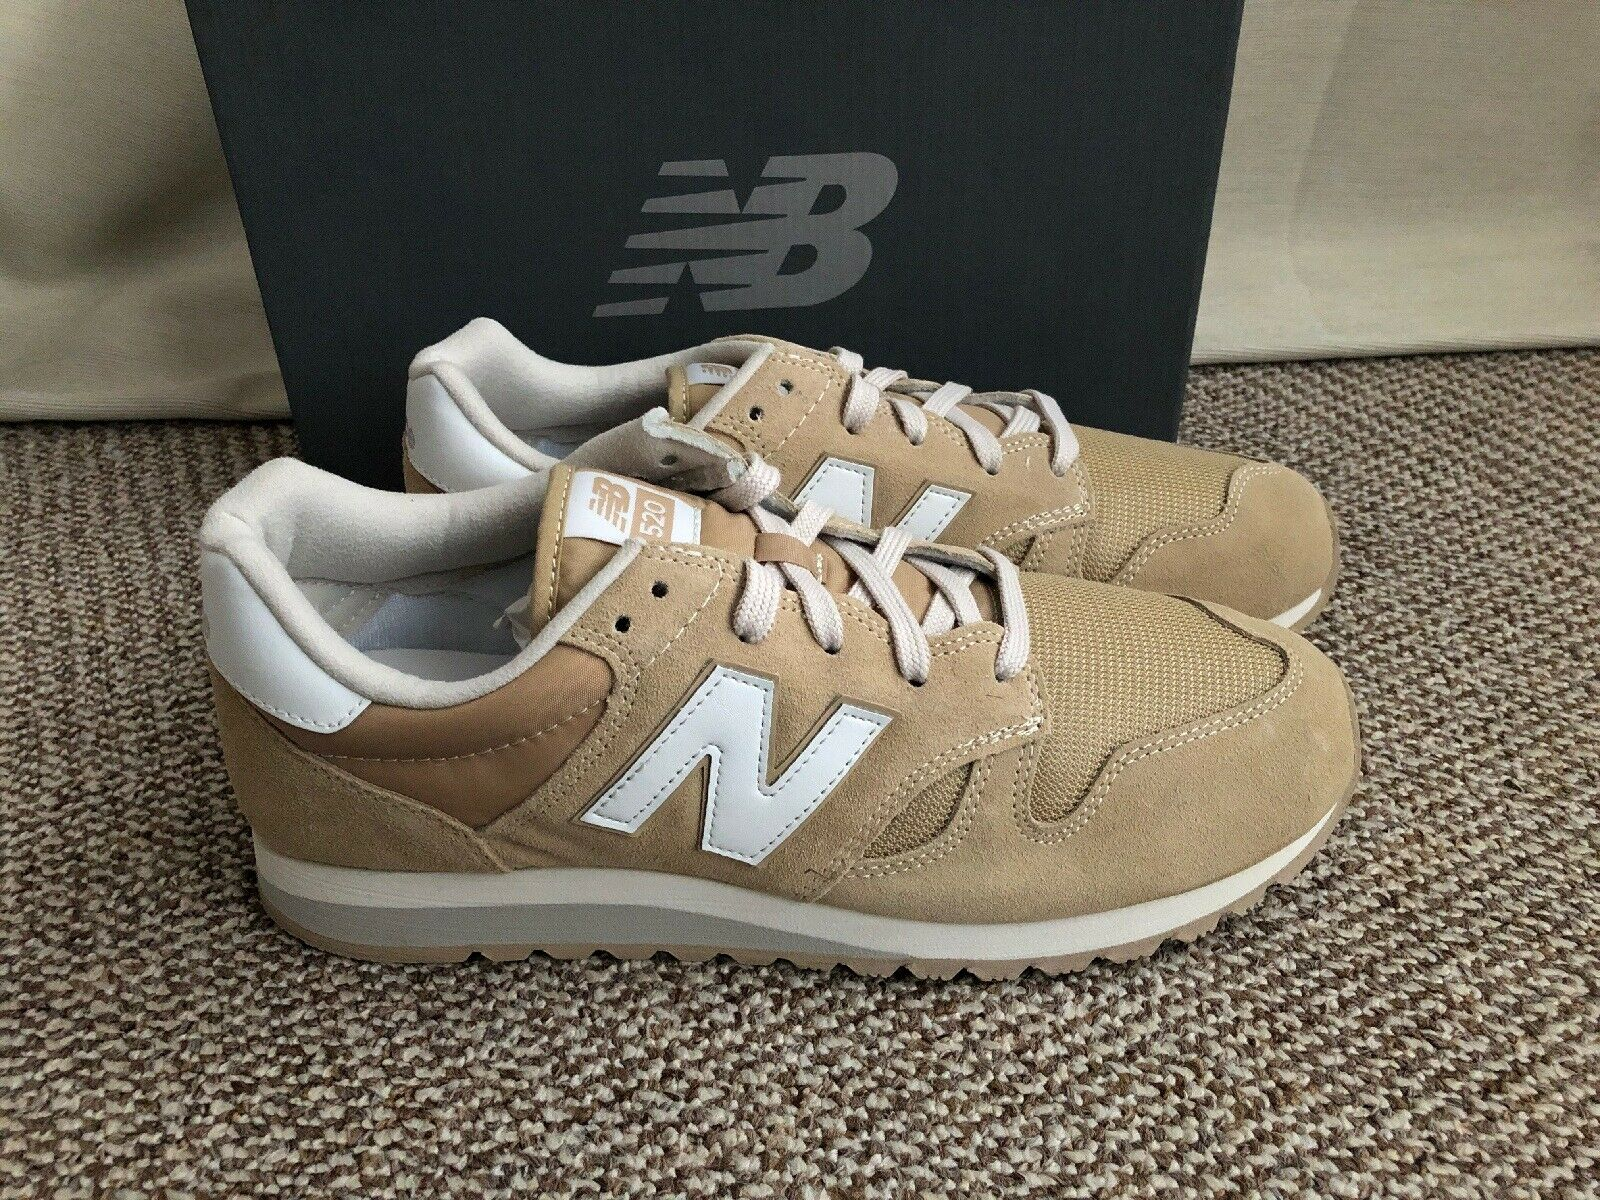 New Balance 520 Mens Trainers Größe UK 10 EUR 44.5